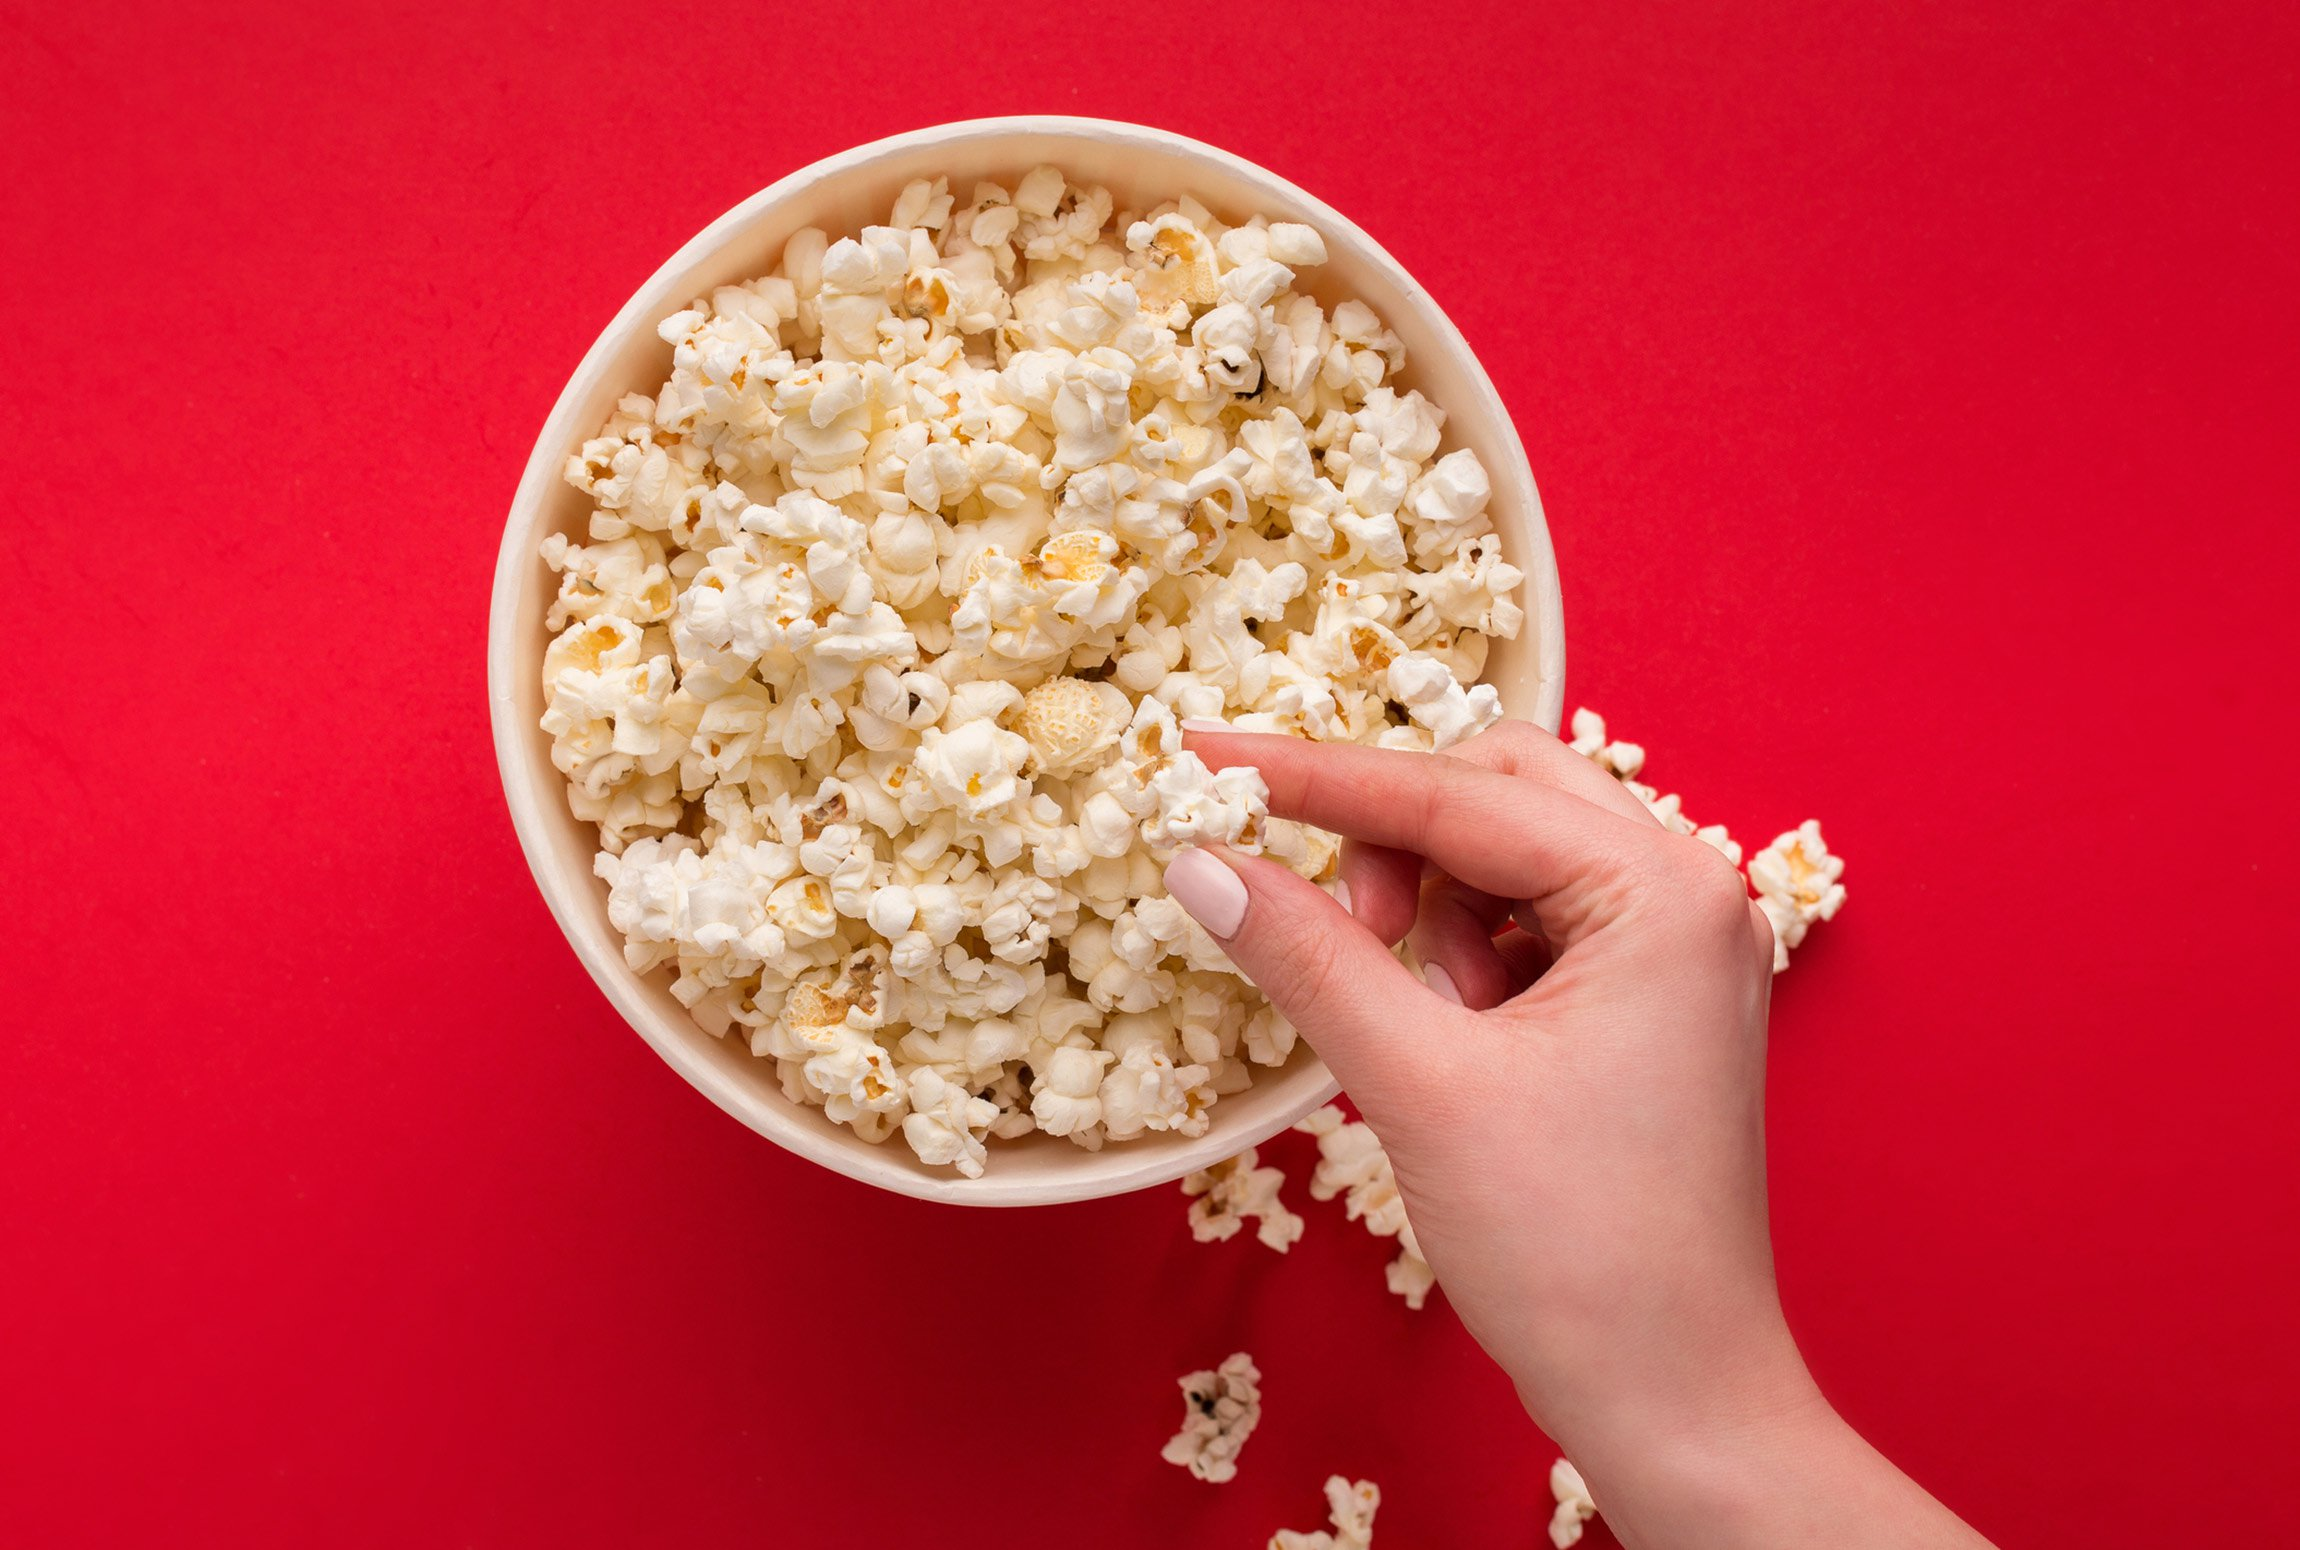 A hand taking popcorn out of a bowl